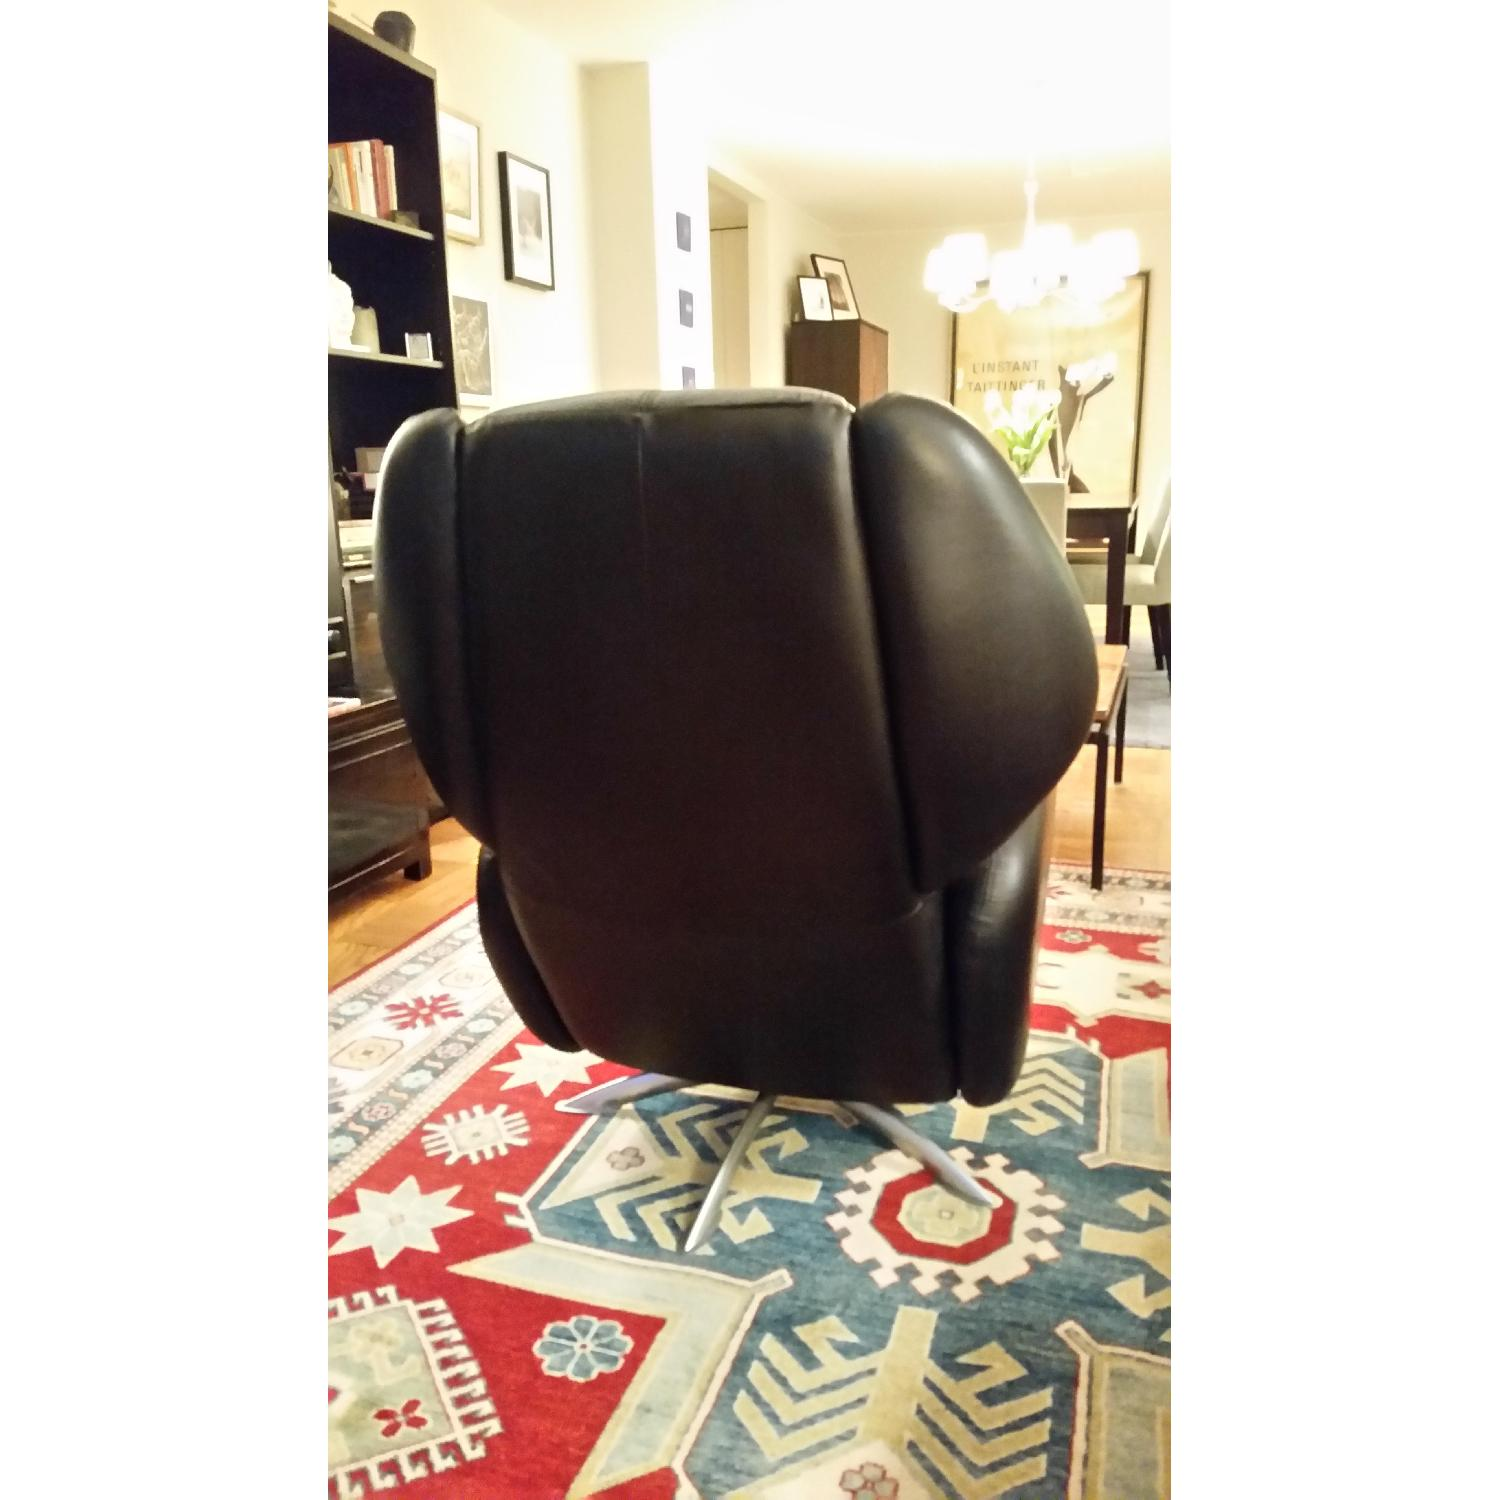 Lee's Art Shop Leather Reading Chair - image-3